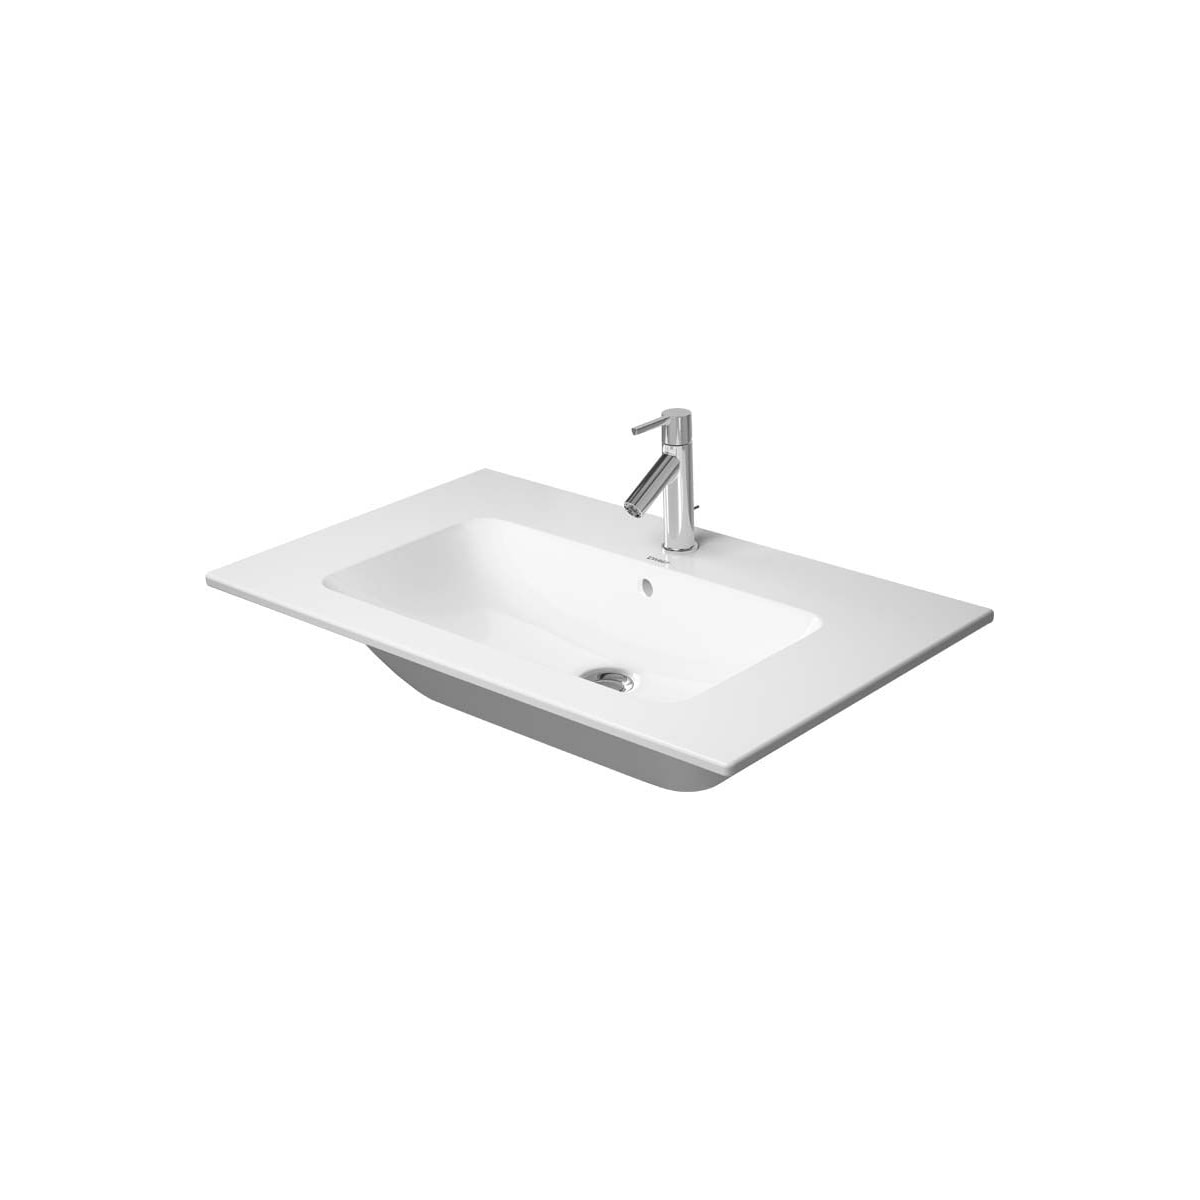 Duravit 2336830000 White Me By Starck 33 Ceramic Vanity Top With 1 Faucet Hole Faucet Com